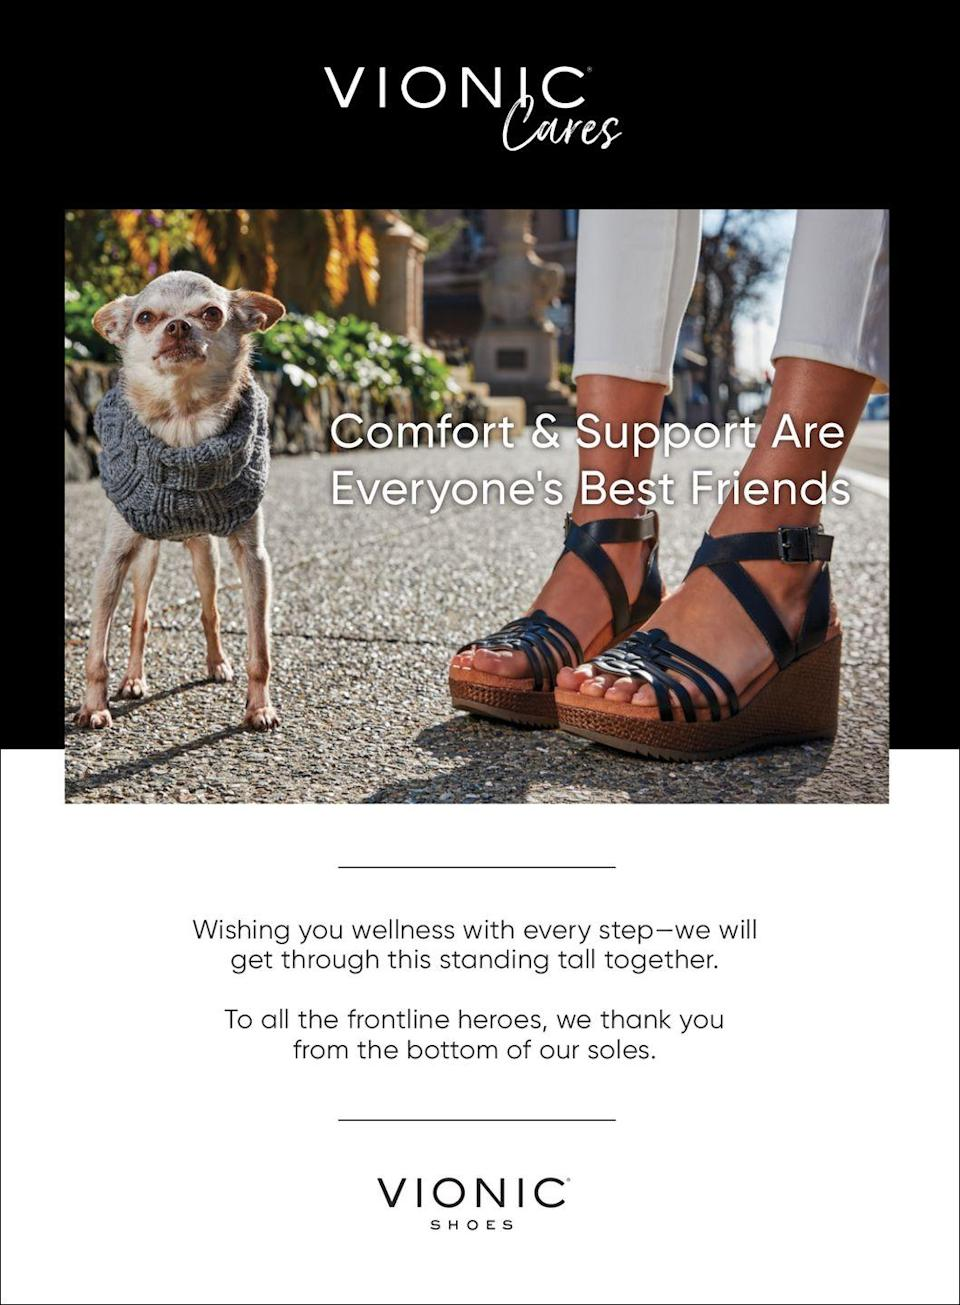 <p>Comfort & Support Are Everyone's Best Friends. </p><p>Wishing you wellness with every step—we will get through this standing tall together. </p><p>To all the frontline heroes, we thank you from the bottom of our soles. </p><p><em>Vionic Cares. </em></p>